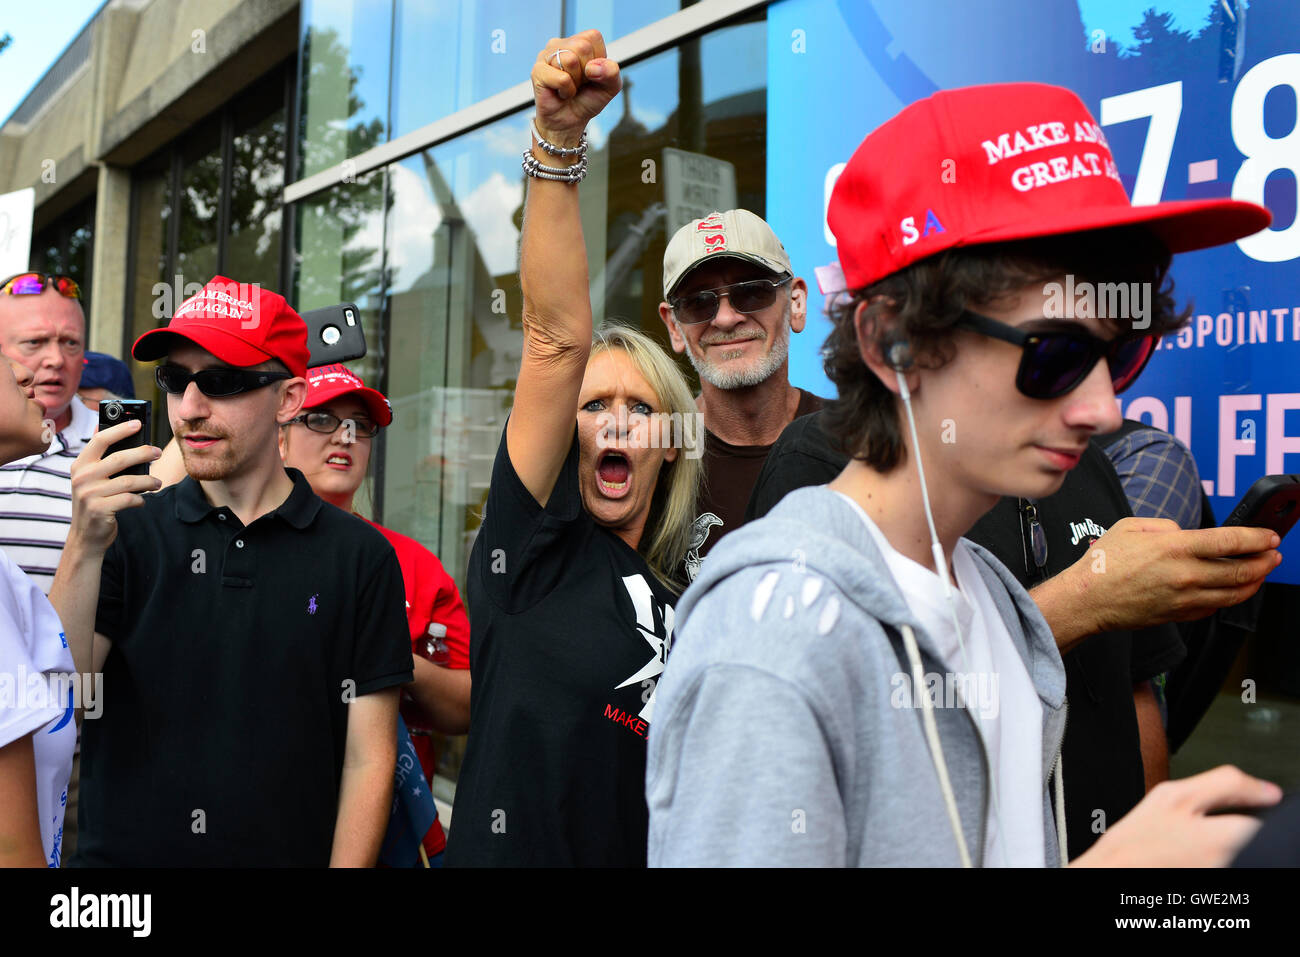 Donald Trump Rally in Asheville, NC, attracts angry protesters clashing with supporters on the sidewalks with signs - Stock Image